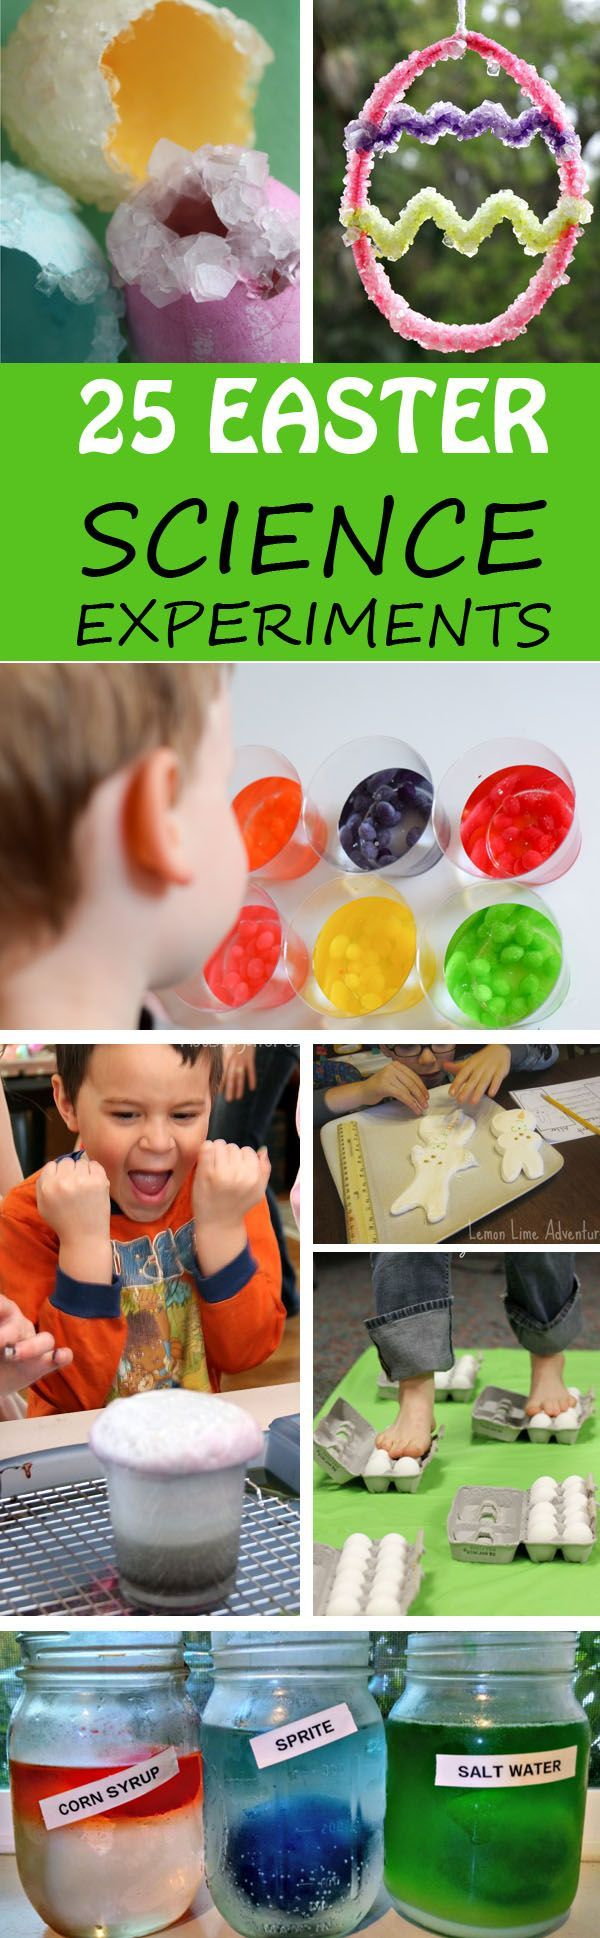 115 best Easter Activities images on Pinterest | Funny science ...